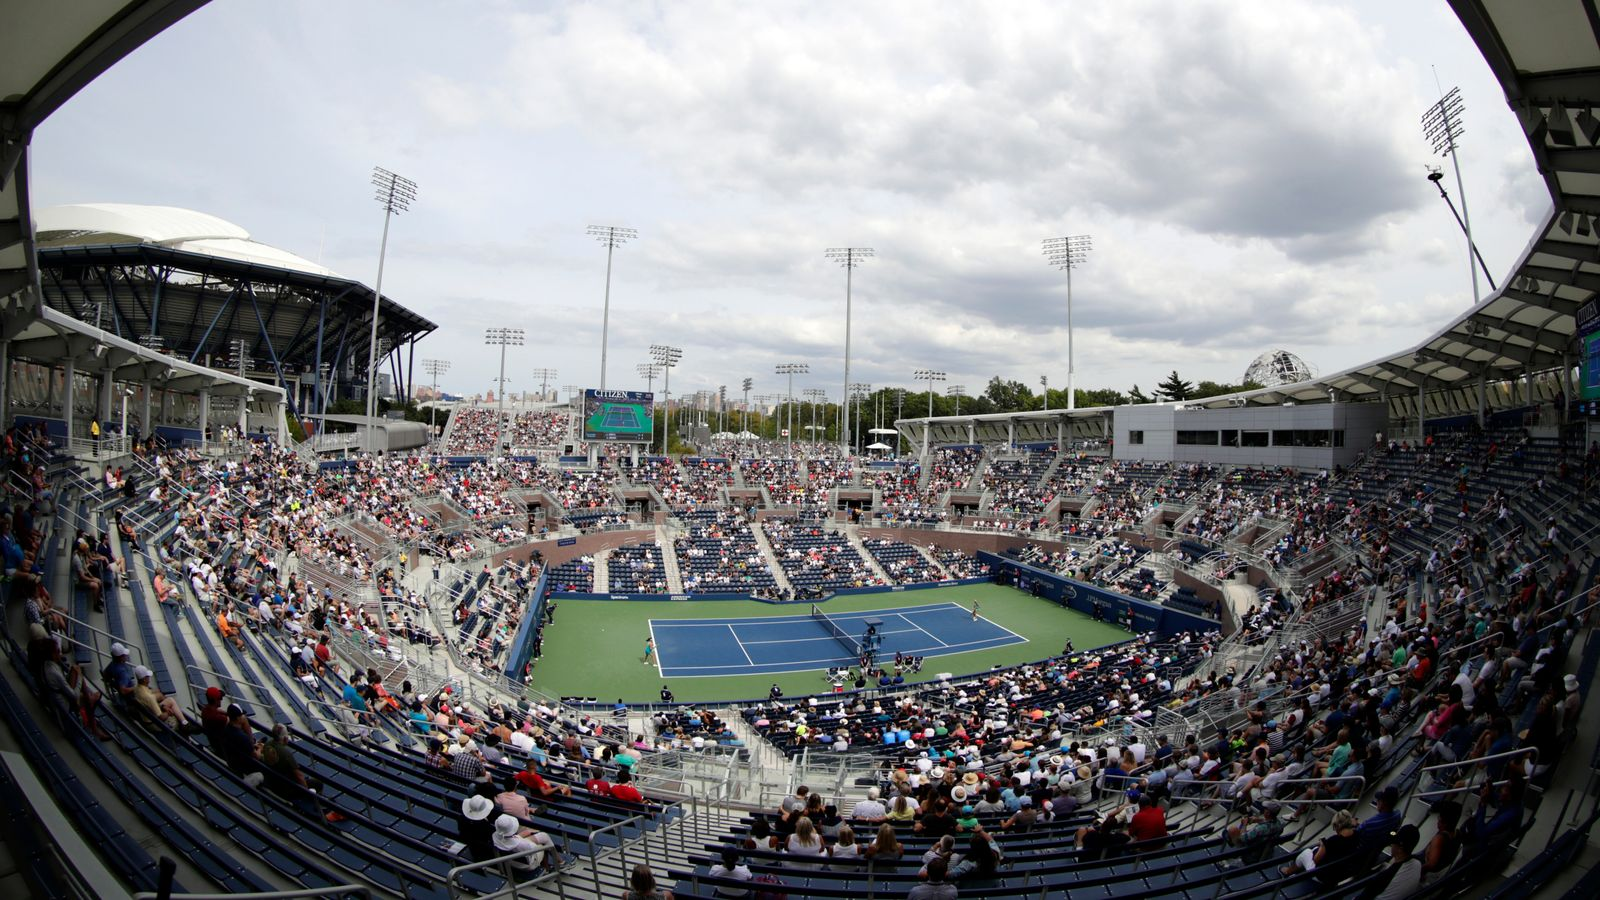 US Open says fans must have proof of COVID-19 vaccine for entry | Tennis News | Sky Sports